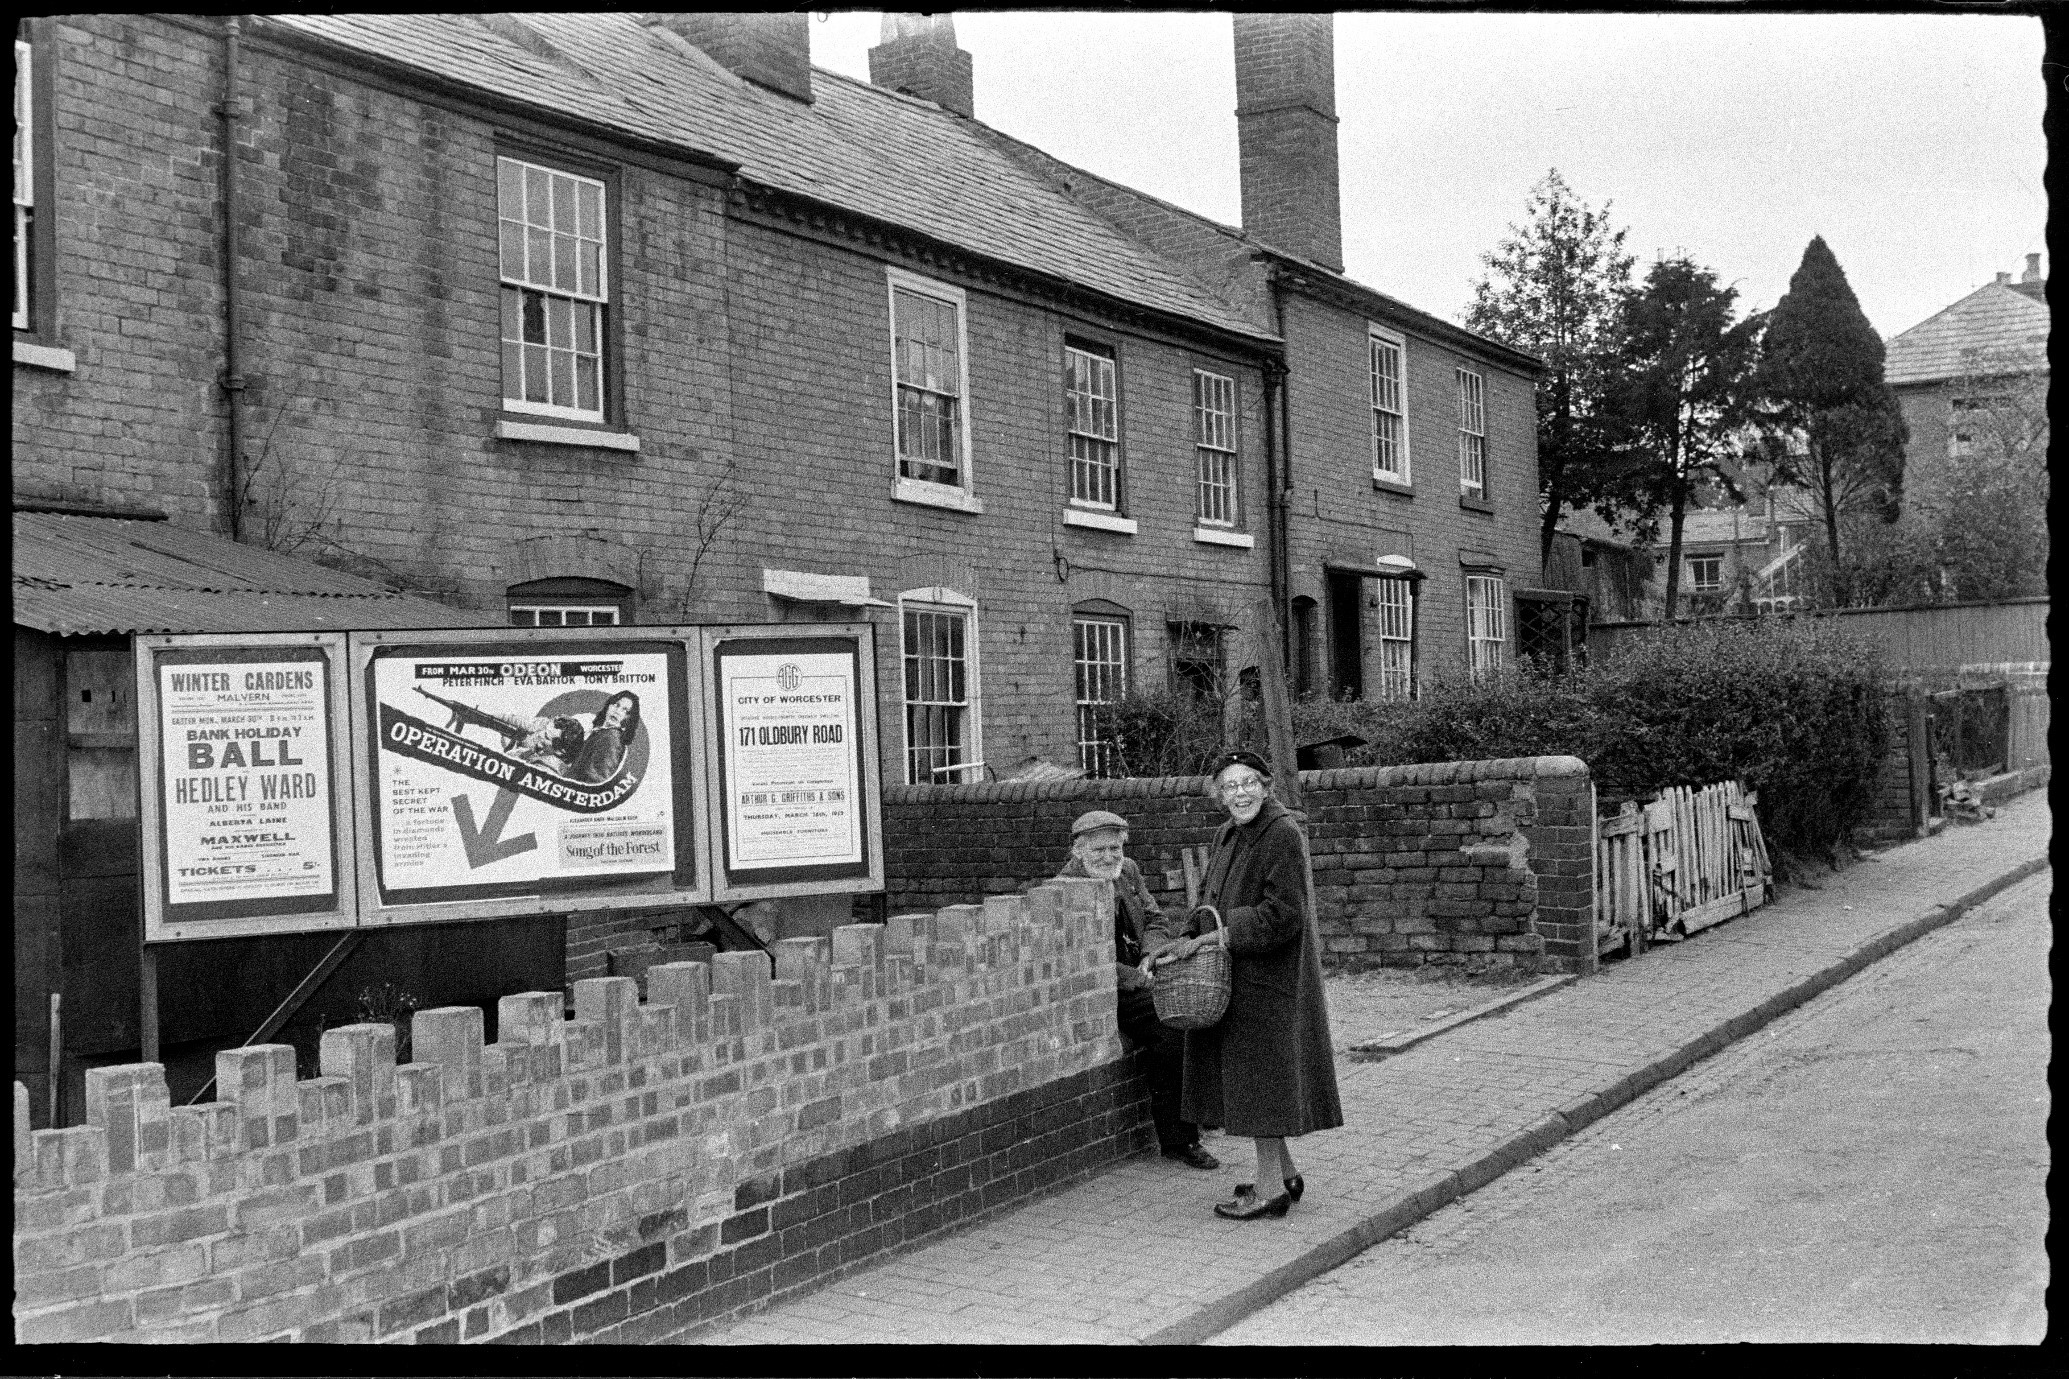 Spring Gardens in The Moors area before demolition, 1959